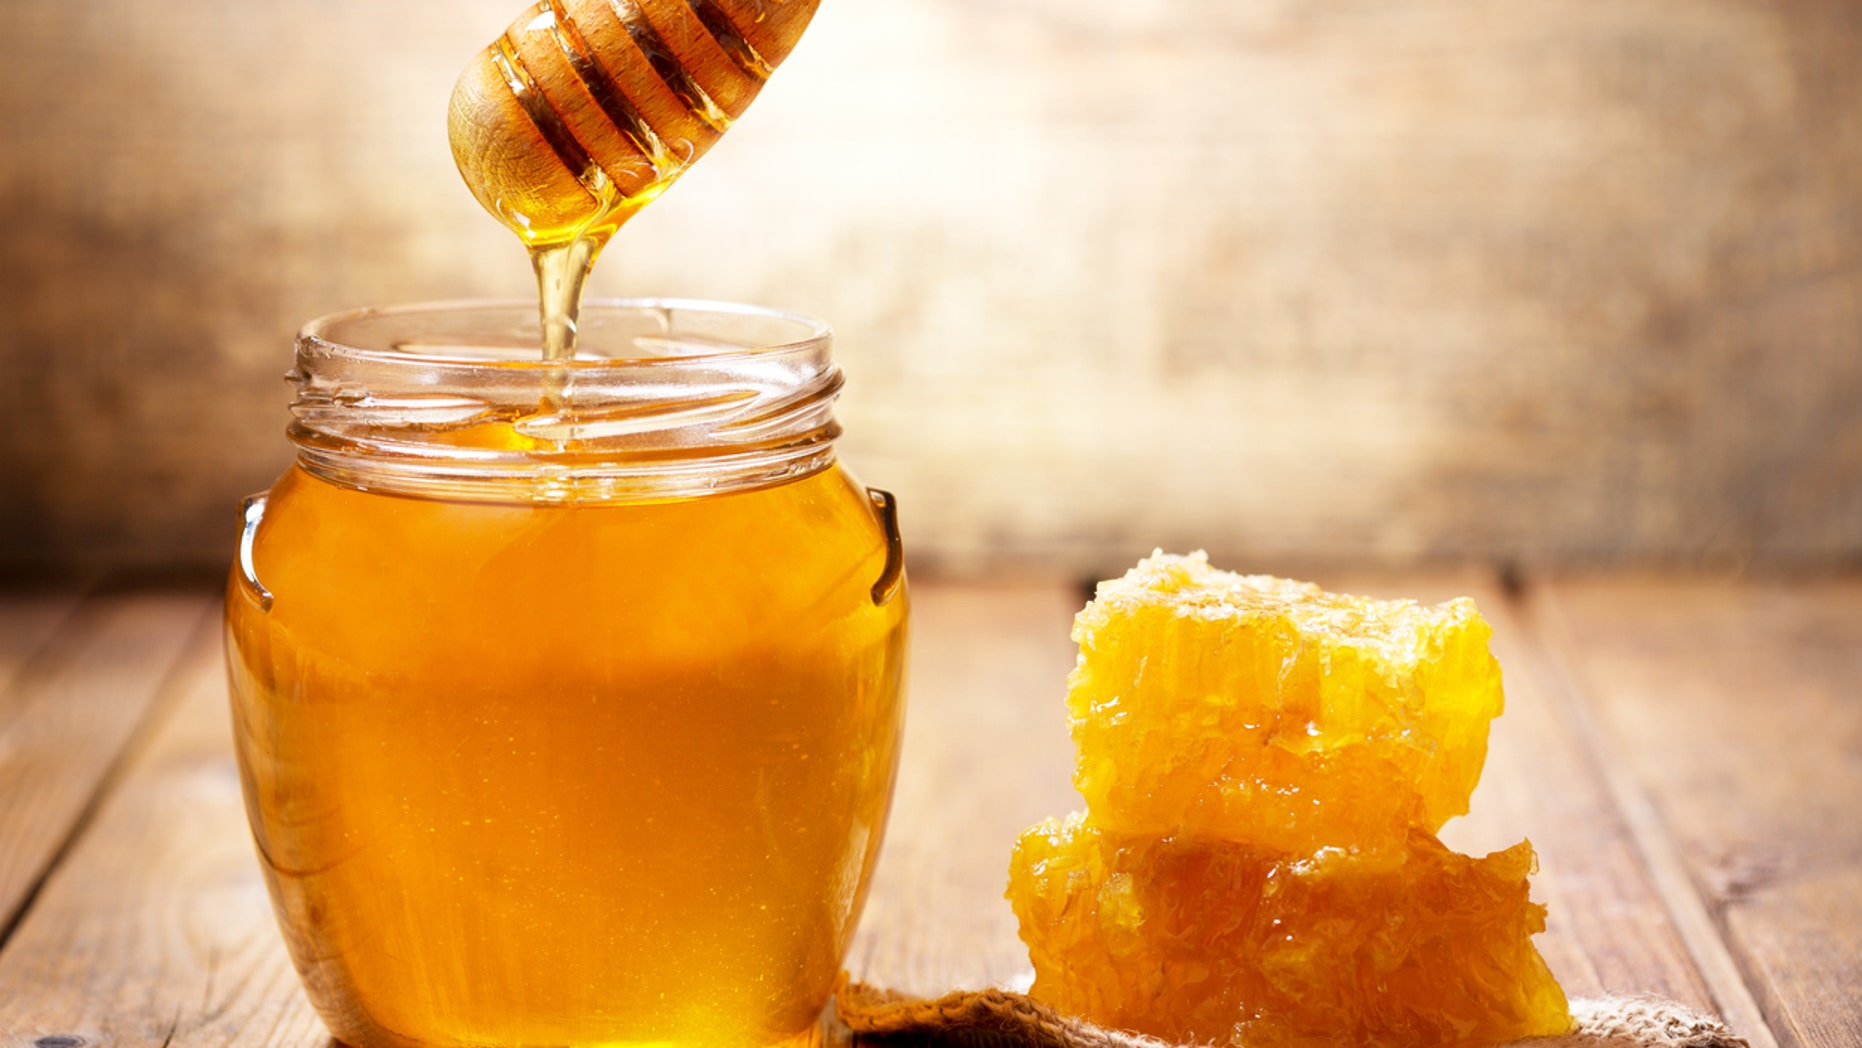 Westlake Legal Group iStock-887517012 Babies can't have honey for this health reason Taste of Home Shanna Mallon fox-news/lifestyle/parenting fnc/food-drink fnc article 6daea660-ddd4-5361-9bdb-5ab8b894b10b